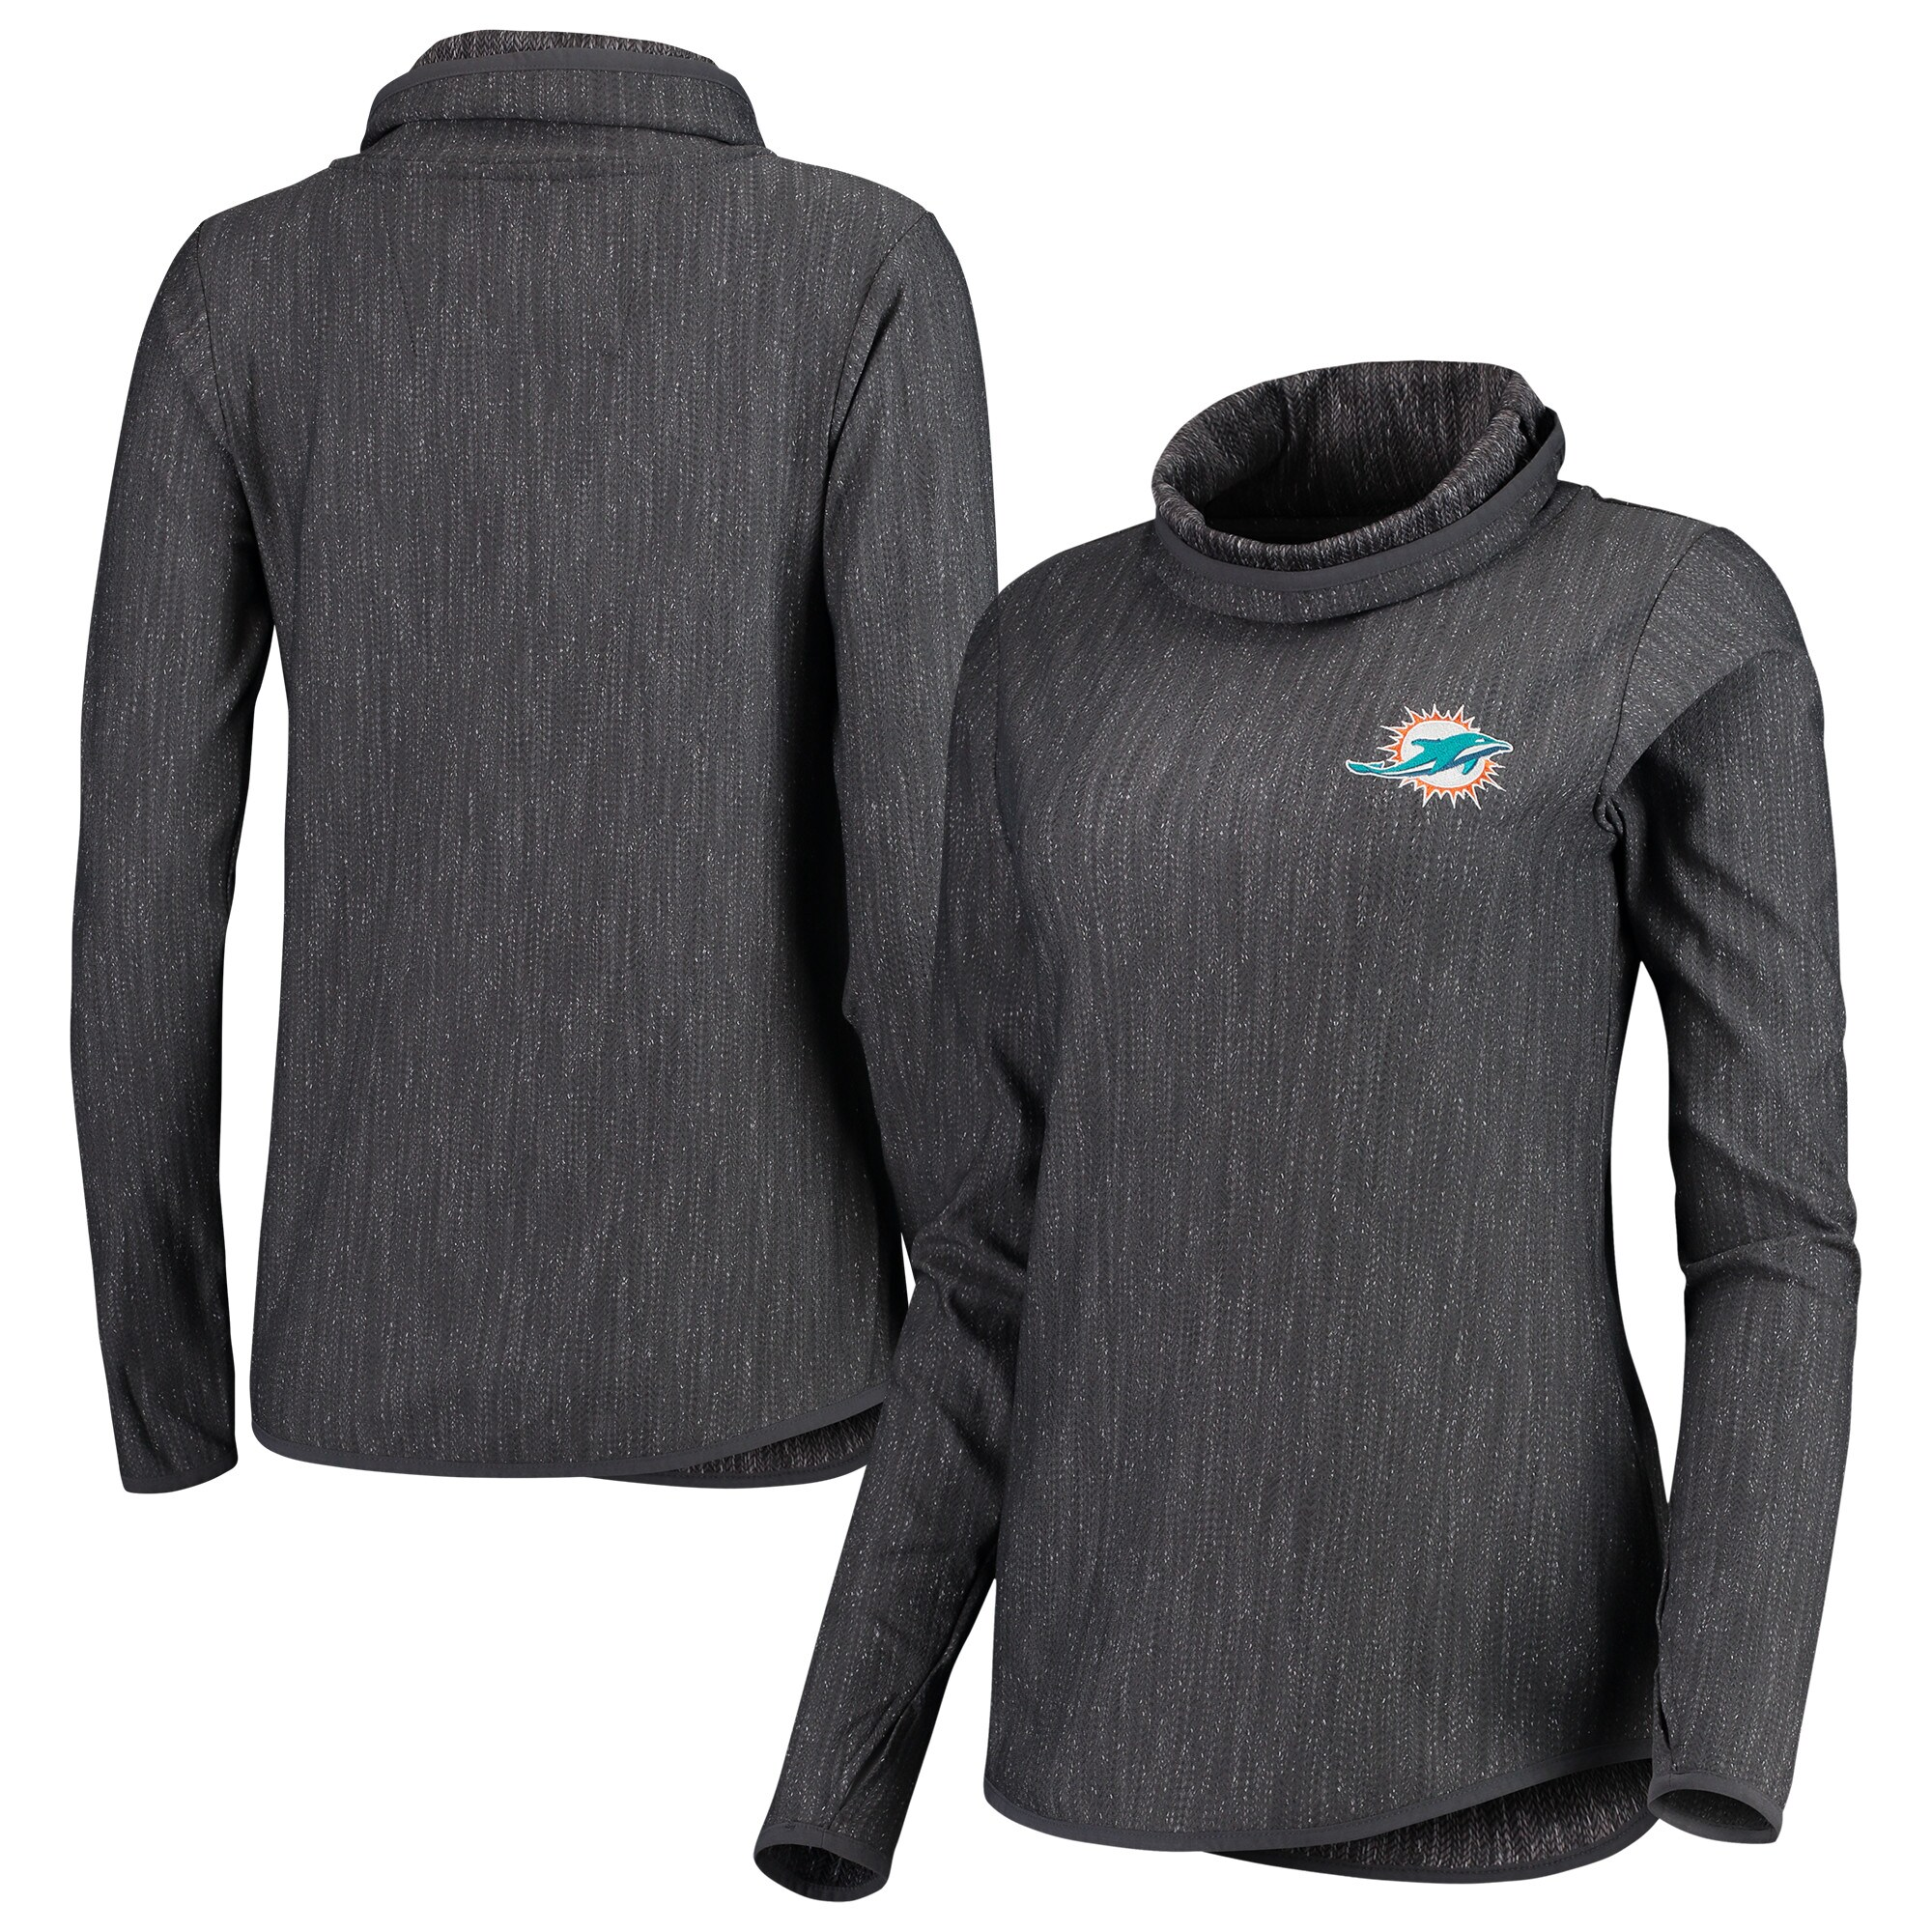 Miami Dolphins Antigua Women's Equalizer Cowl Neck Pullover Sweatshirt - Heathered Charcoal